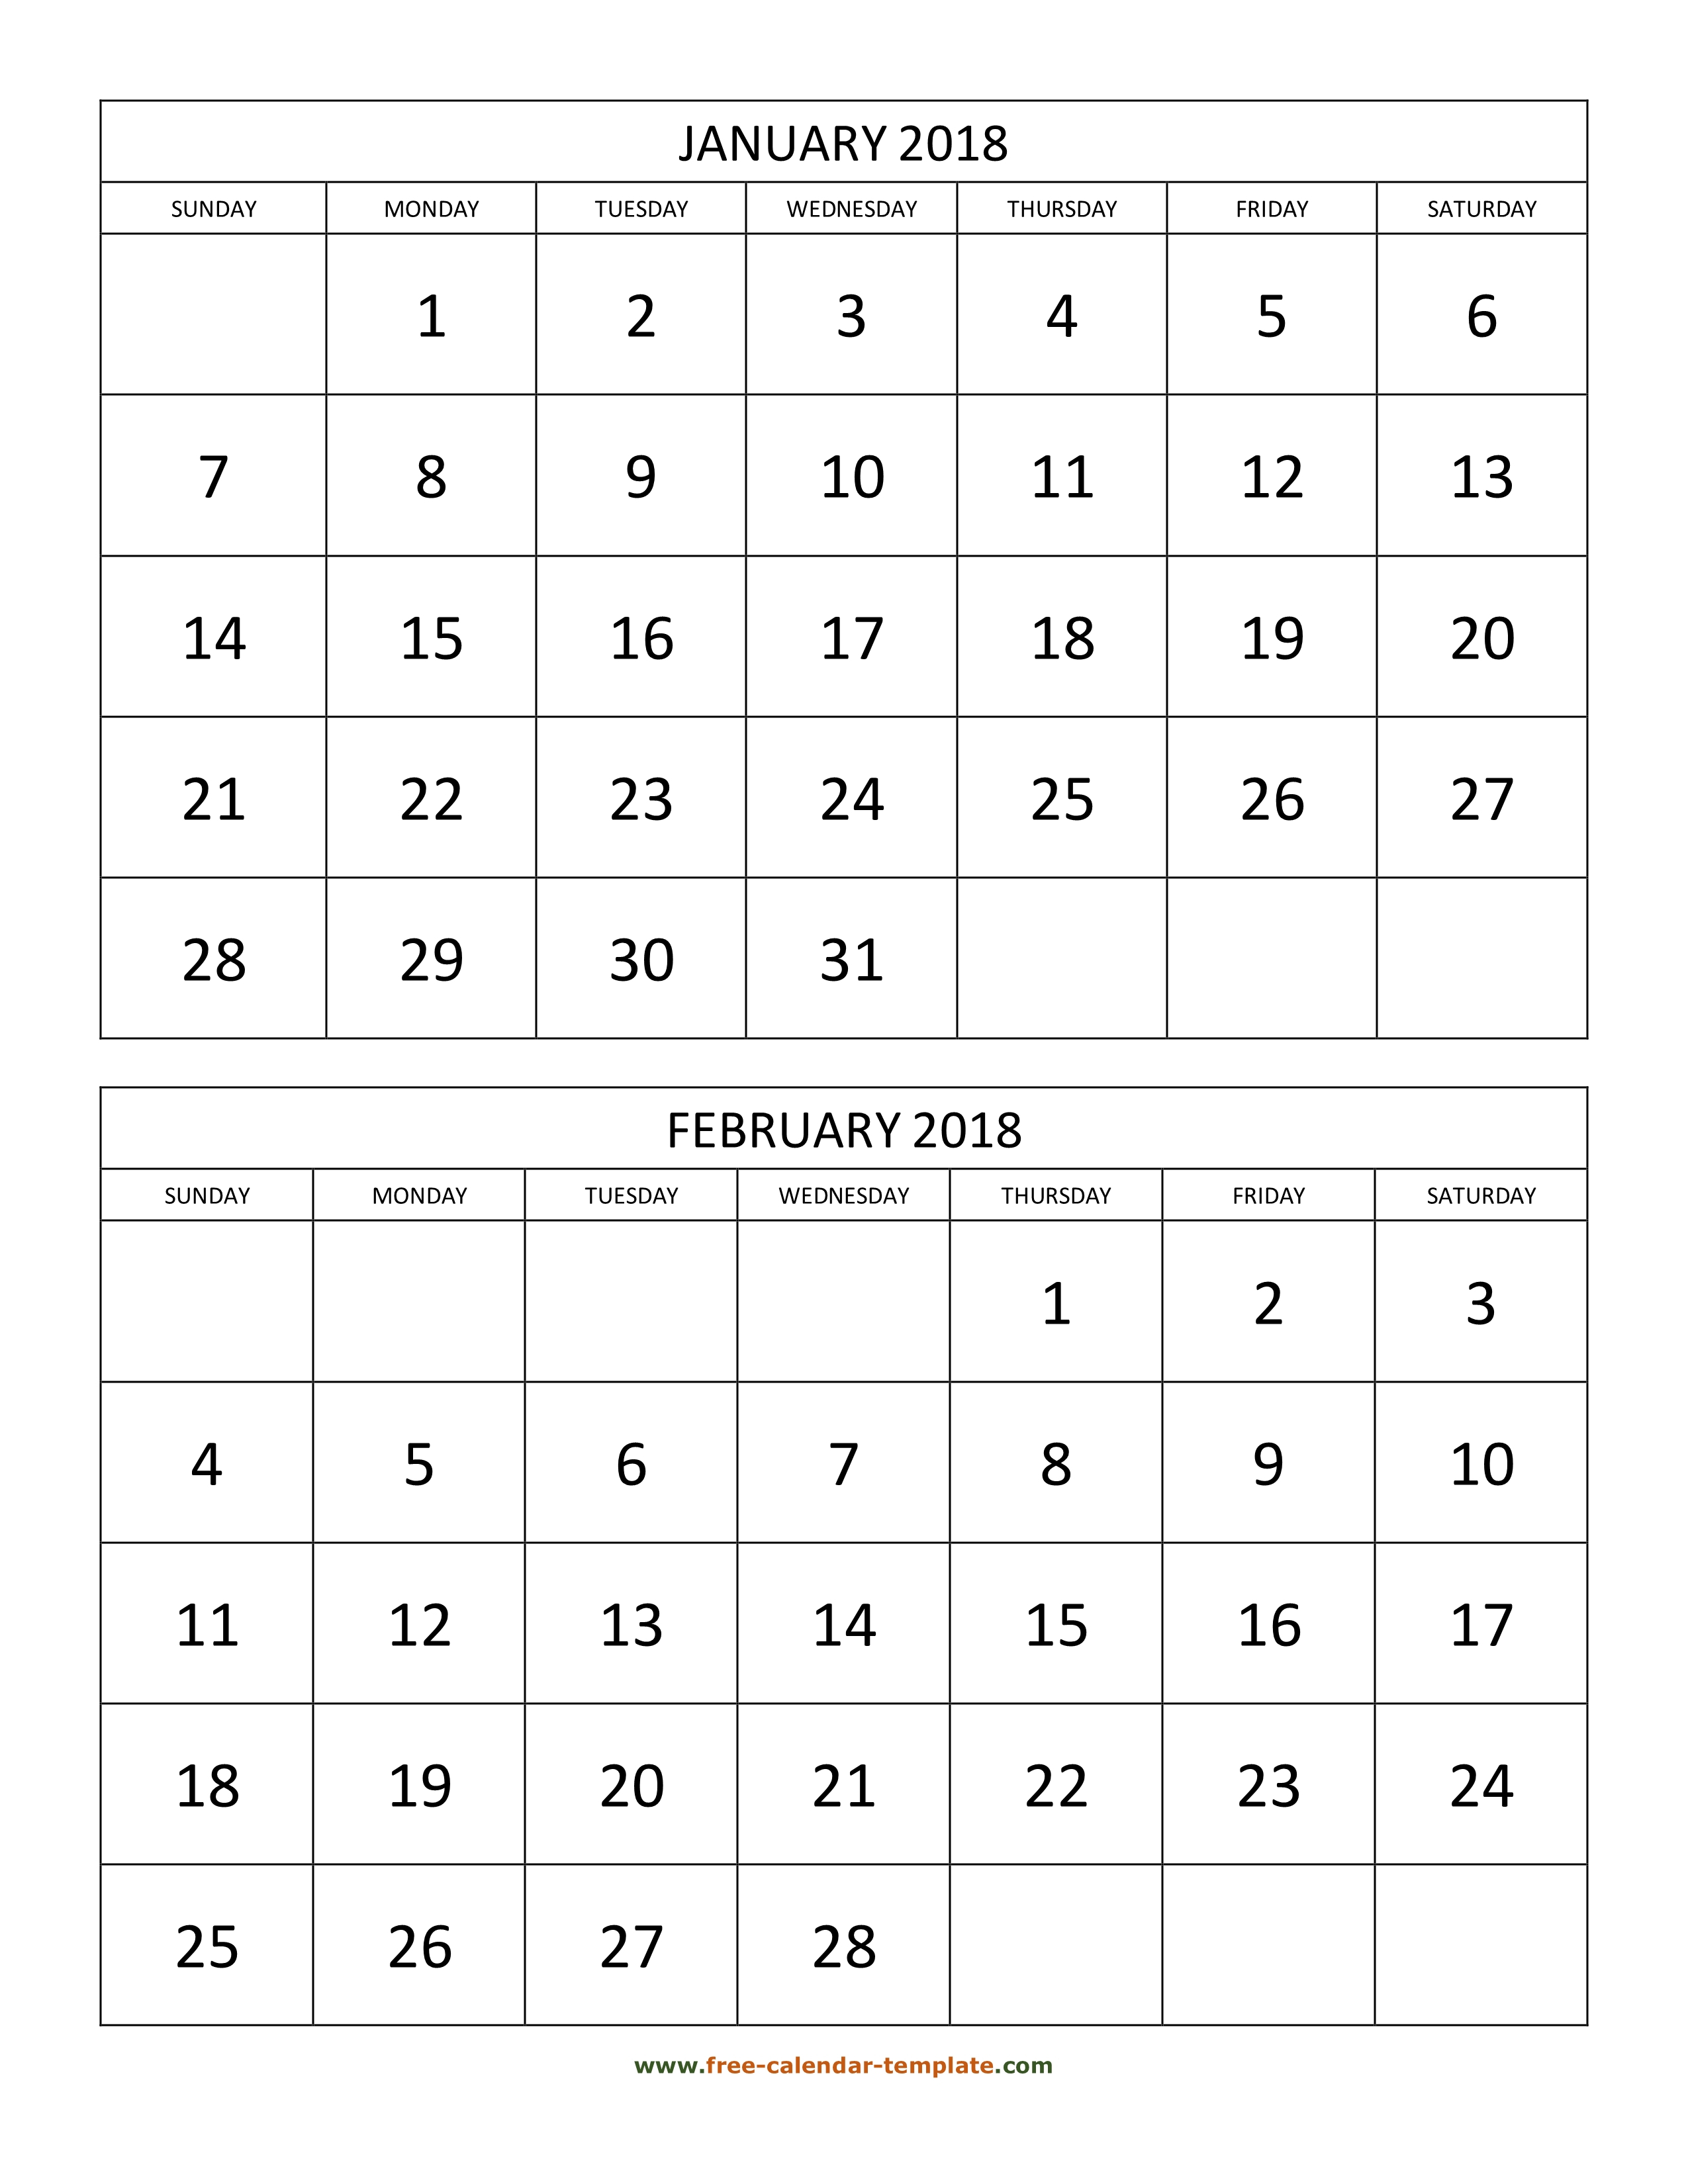 Monthly Calendar 2018, 2 Months Per Page (Vertical) | Free-Calendar with 2 Page Monthly Calendar Template